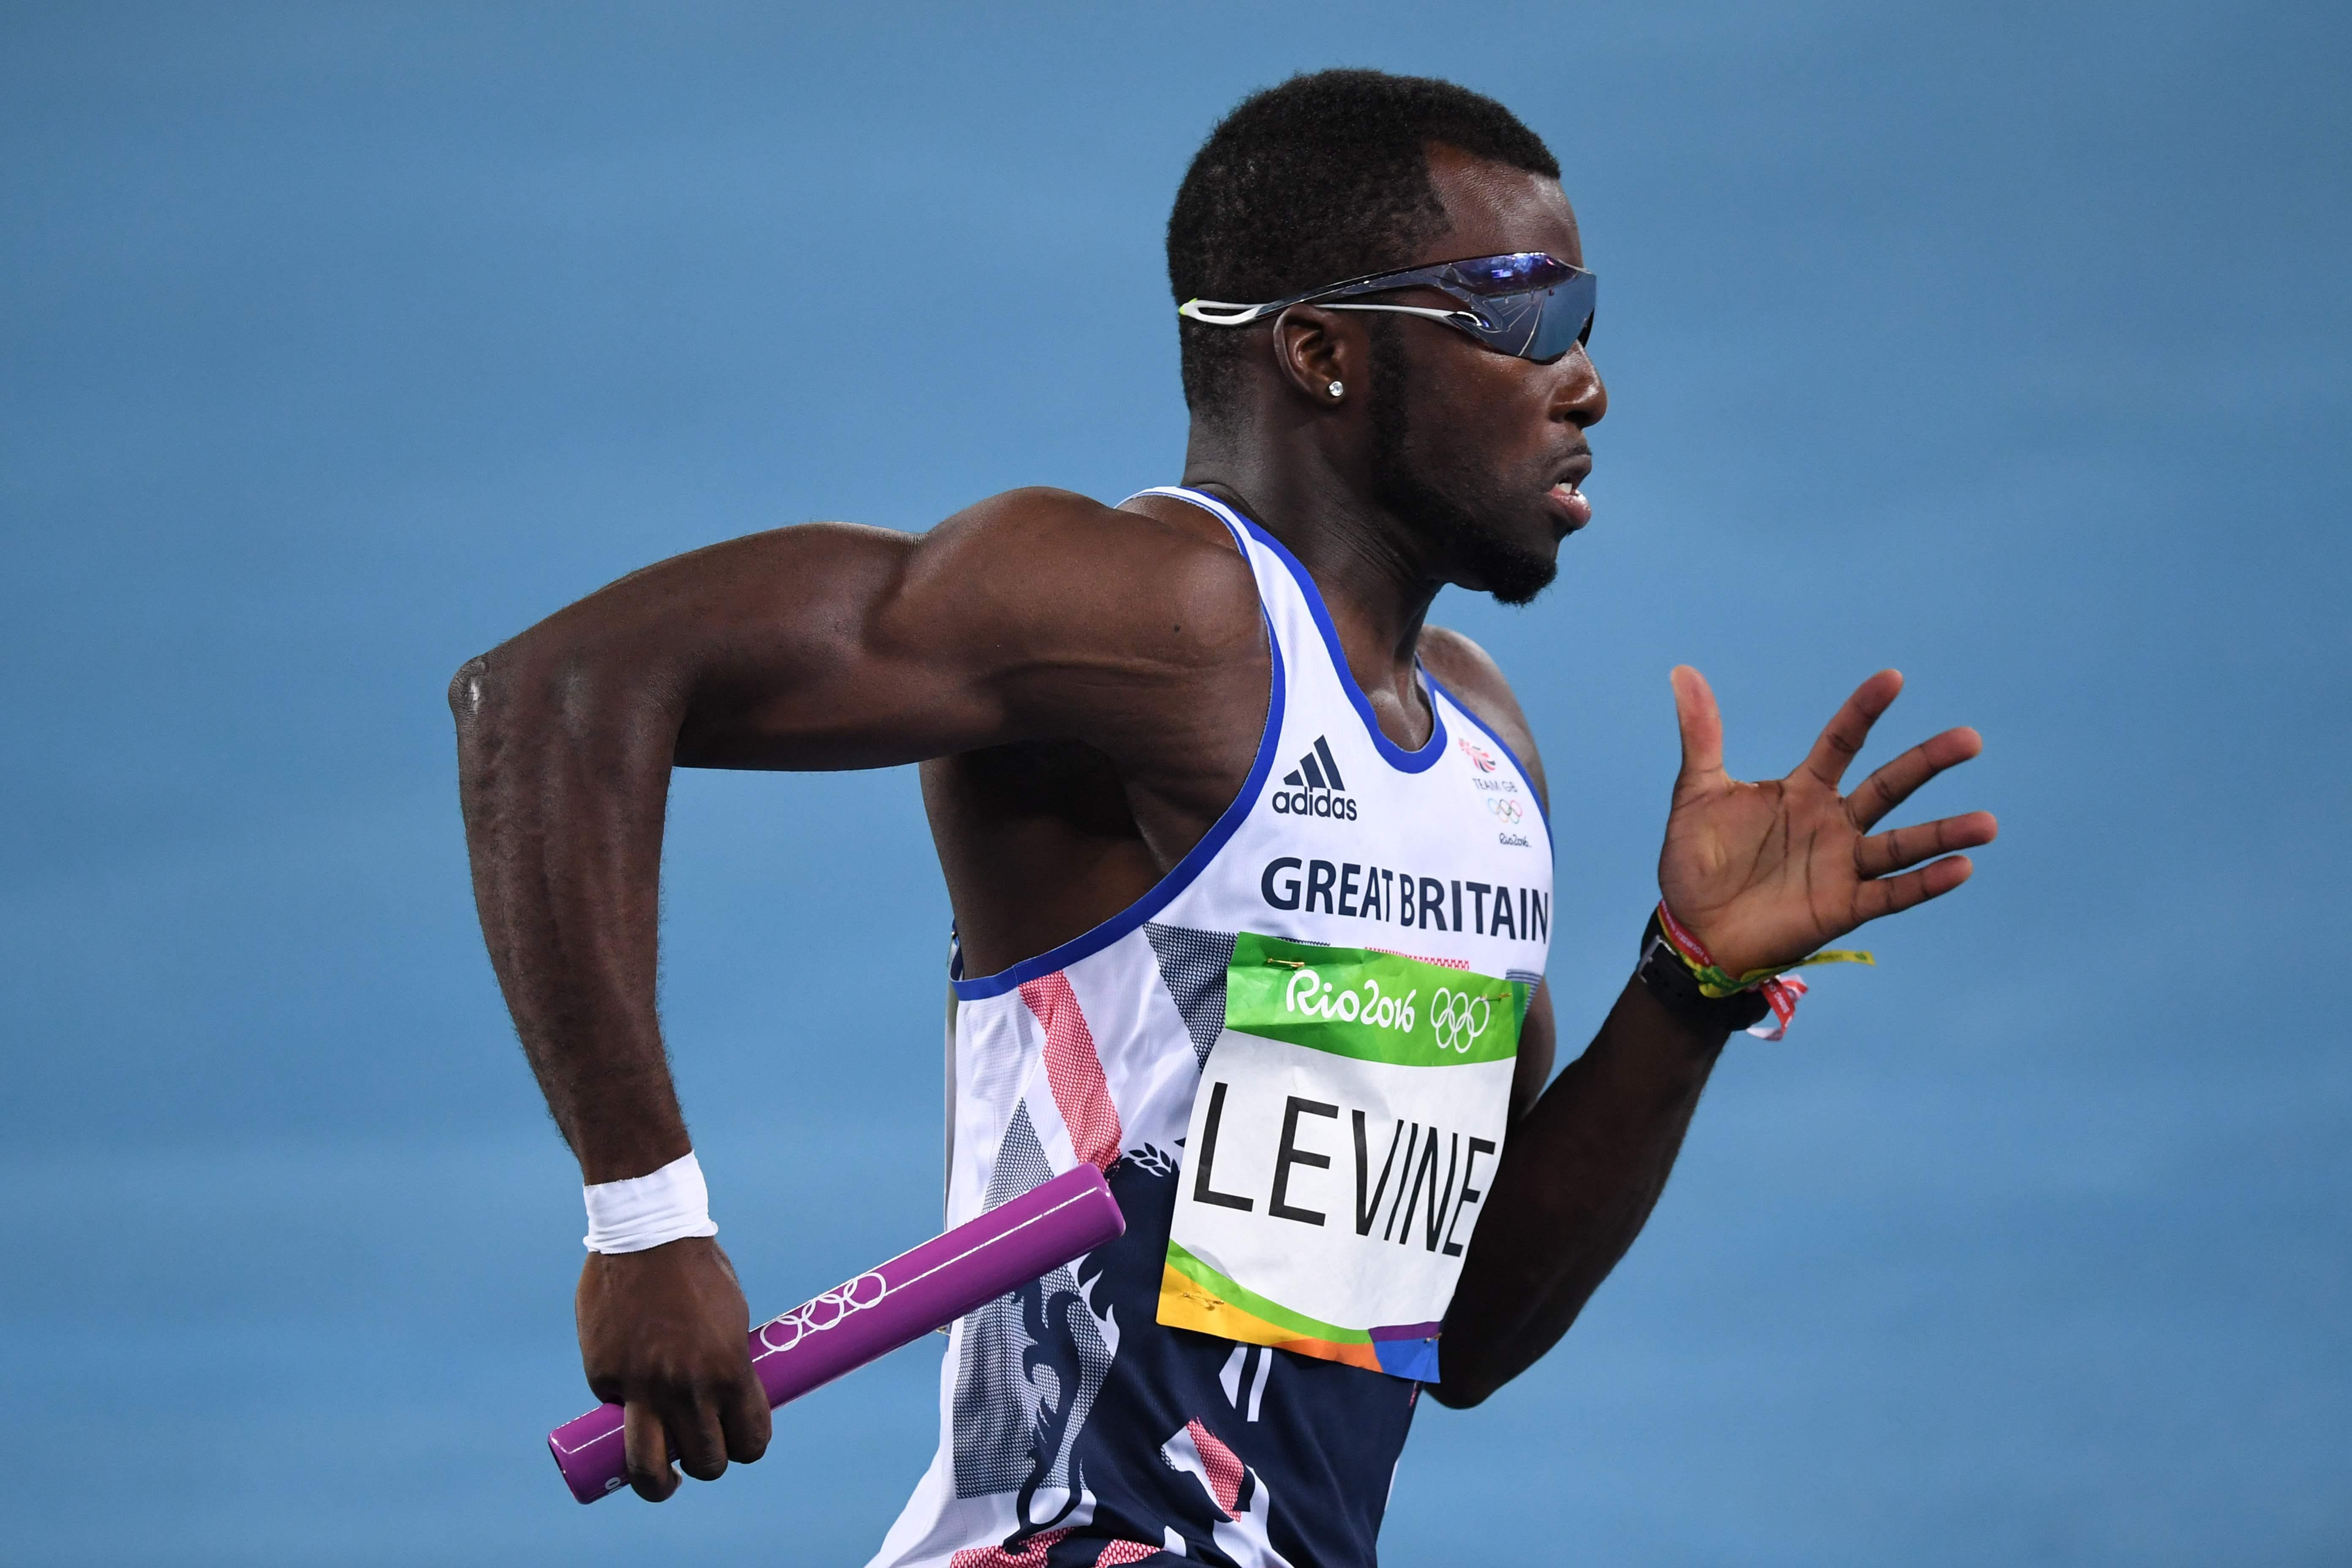 British Olympian Nigel Levine has been banned from all sport for four years after failing a drugs test